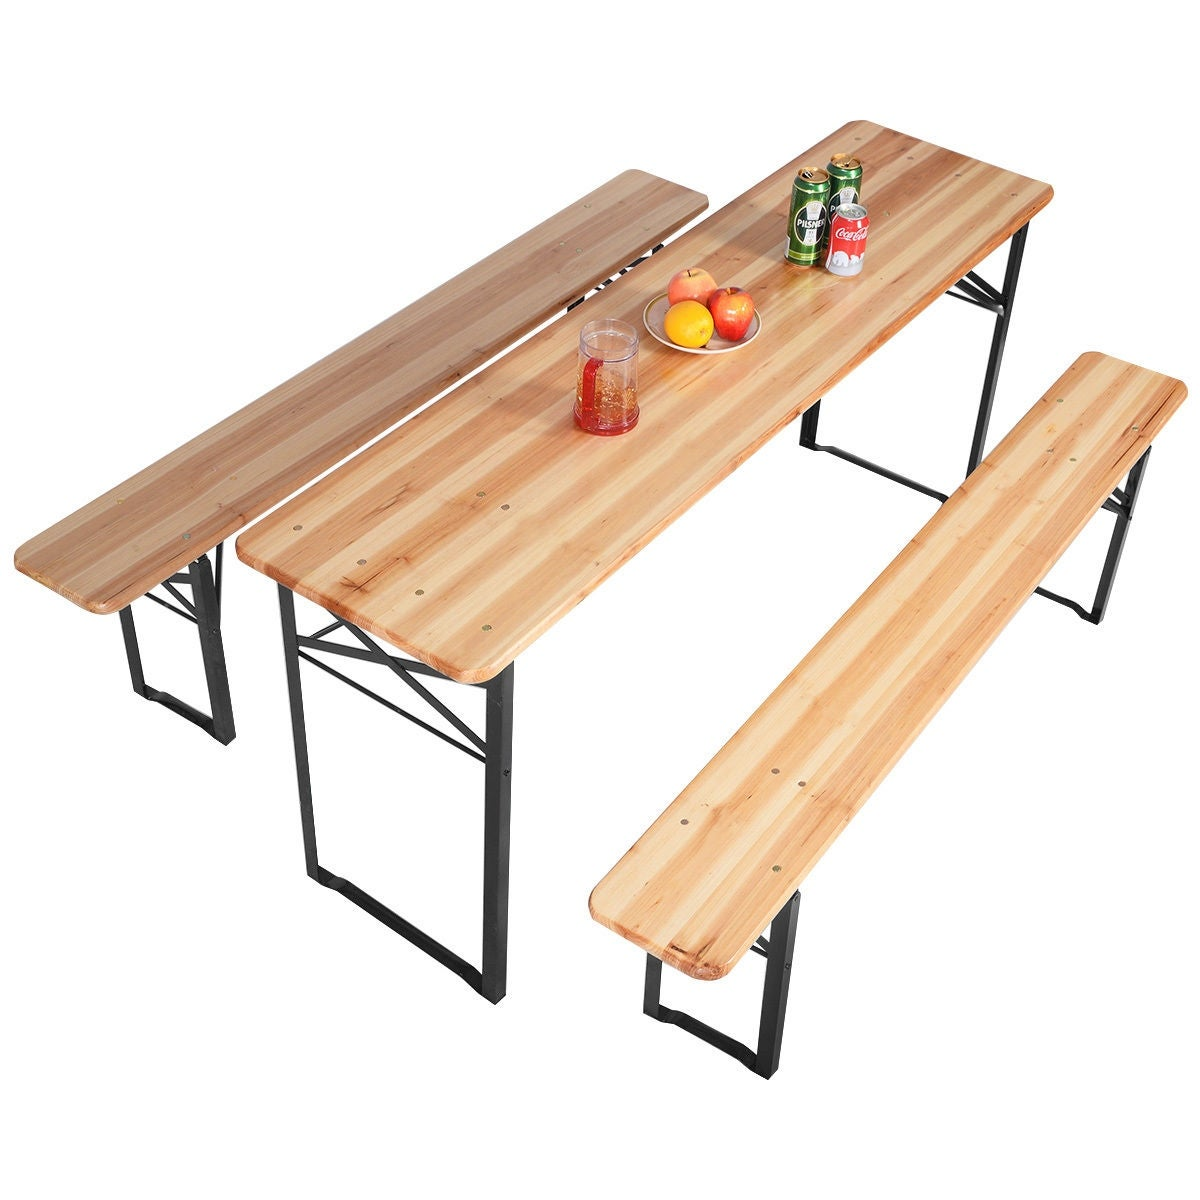 Shop costway 3 pcs beer table bench set folding wooden top picnic shop costway 3 pcs beer table bench set folding wooden top picnic table patio garden free shipping today overstock 15880944 watchthetrailerfo